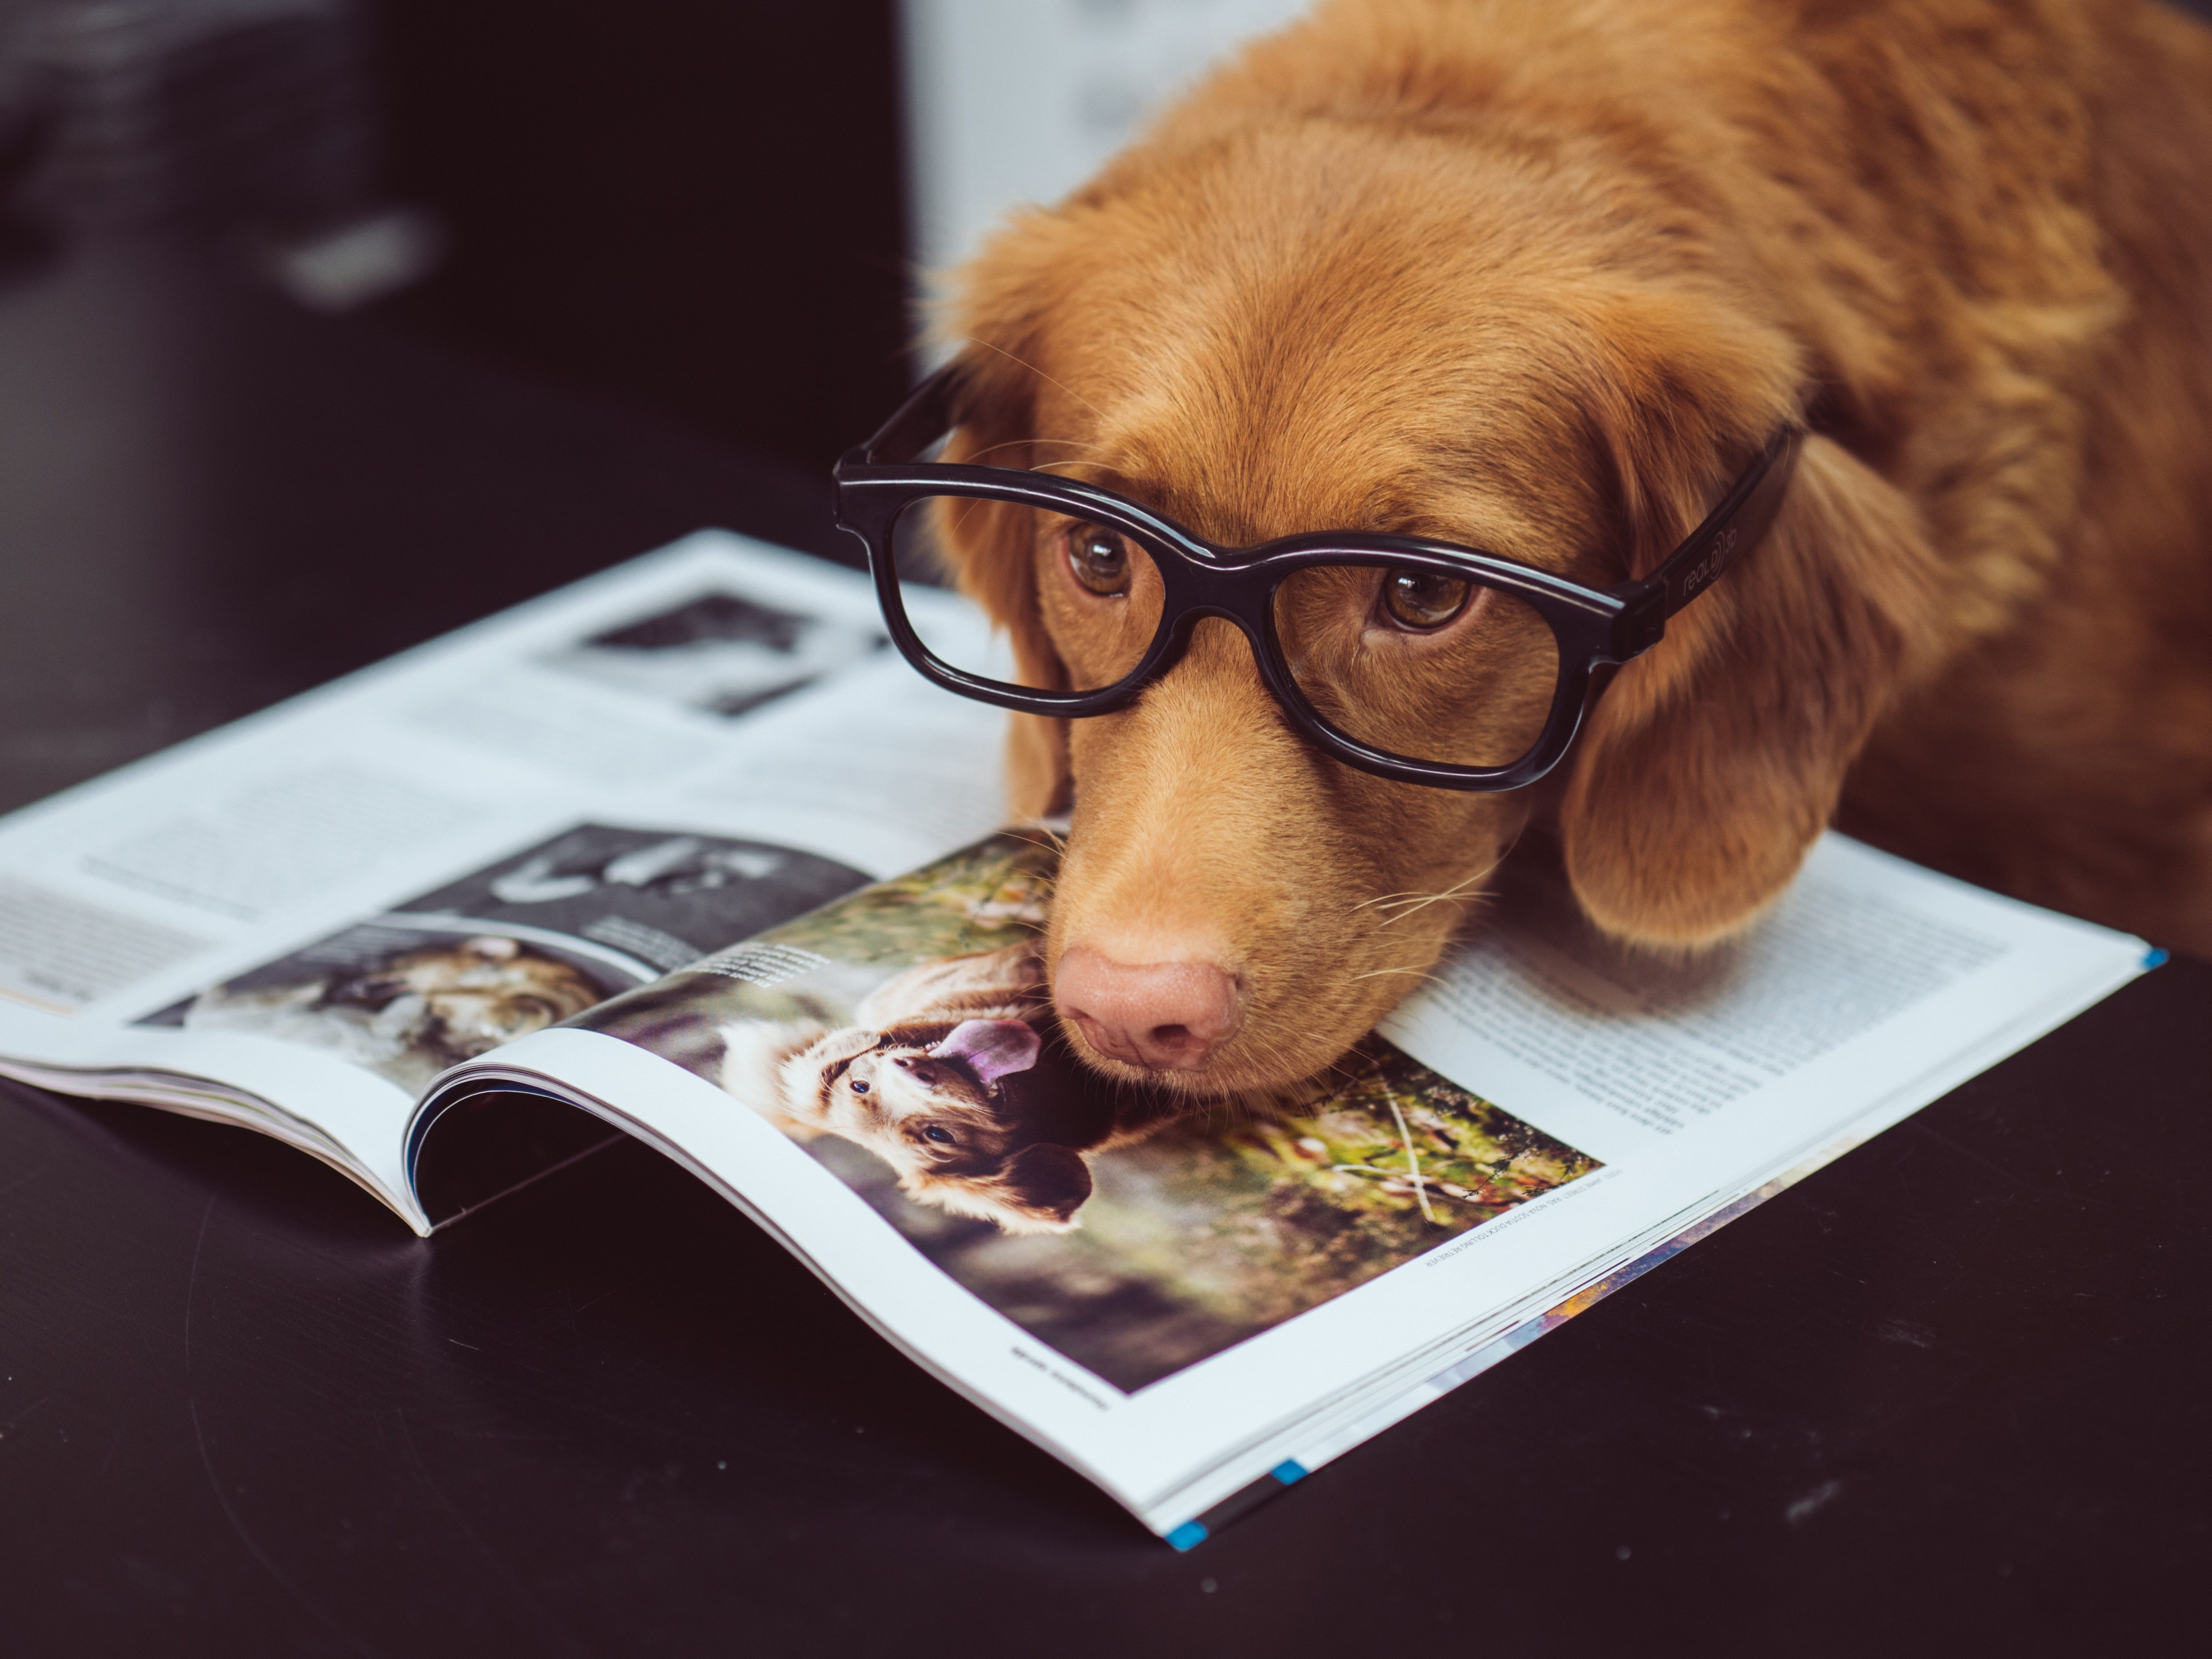 A well-informed dog reads a magazine.